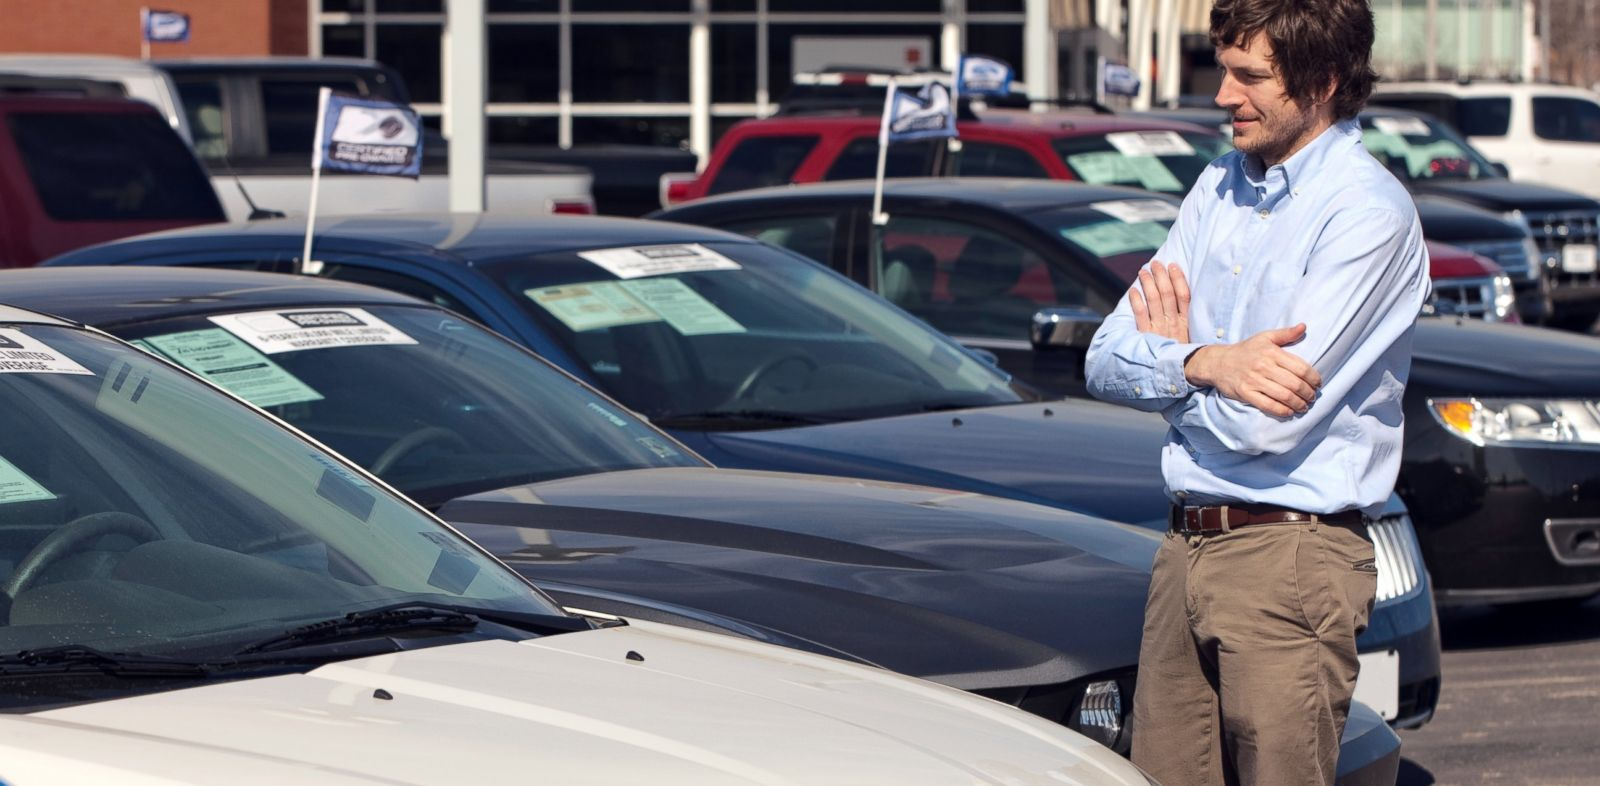 PHOTO: In some leases, gap insurance is built into the contract.